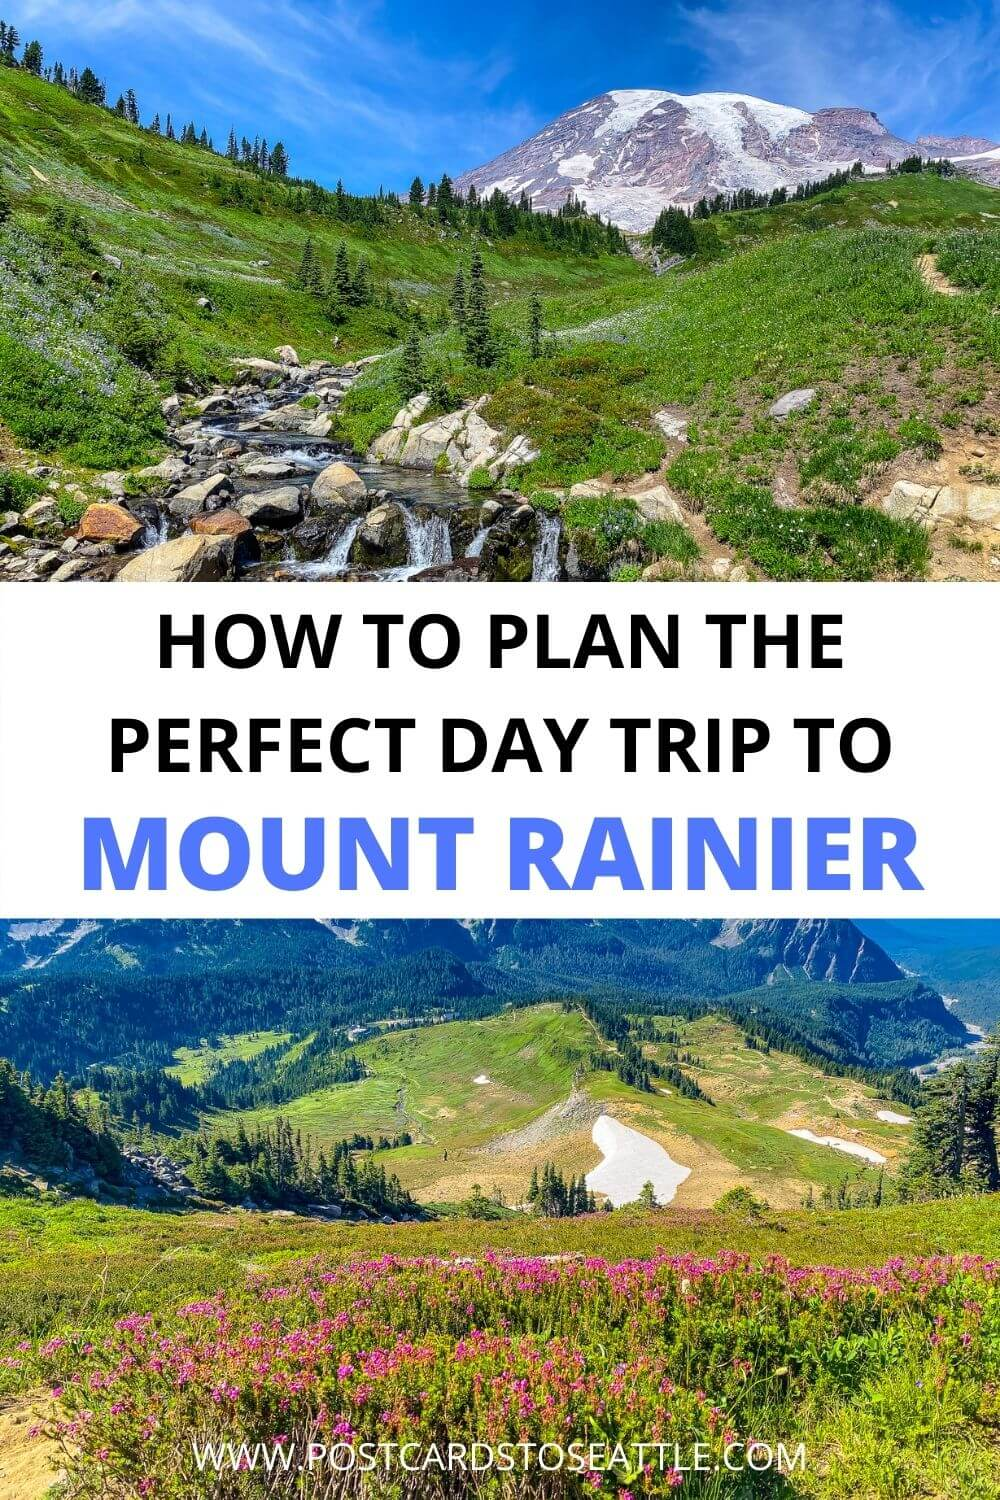 How to Plan the Perfect Day Trip to Mount Rainier